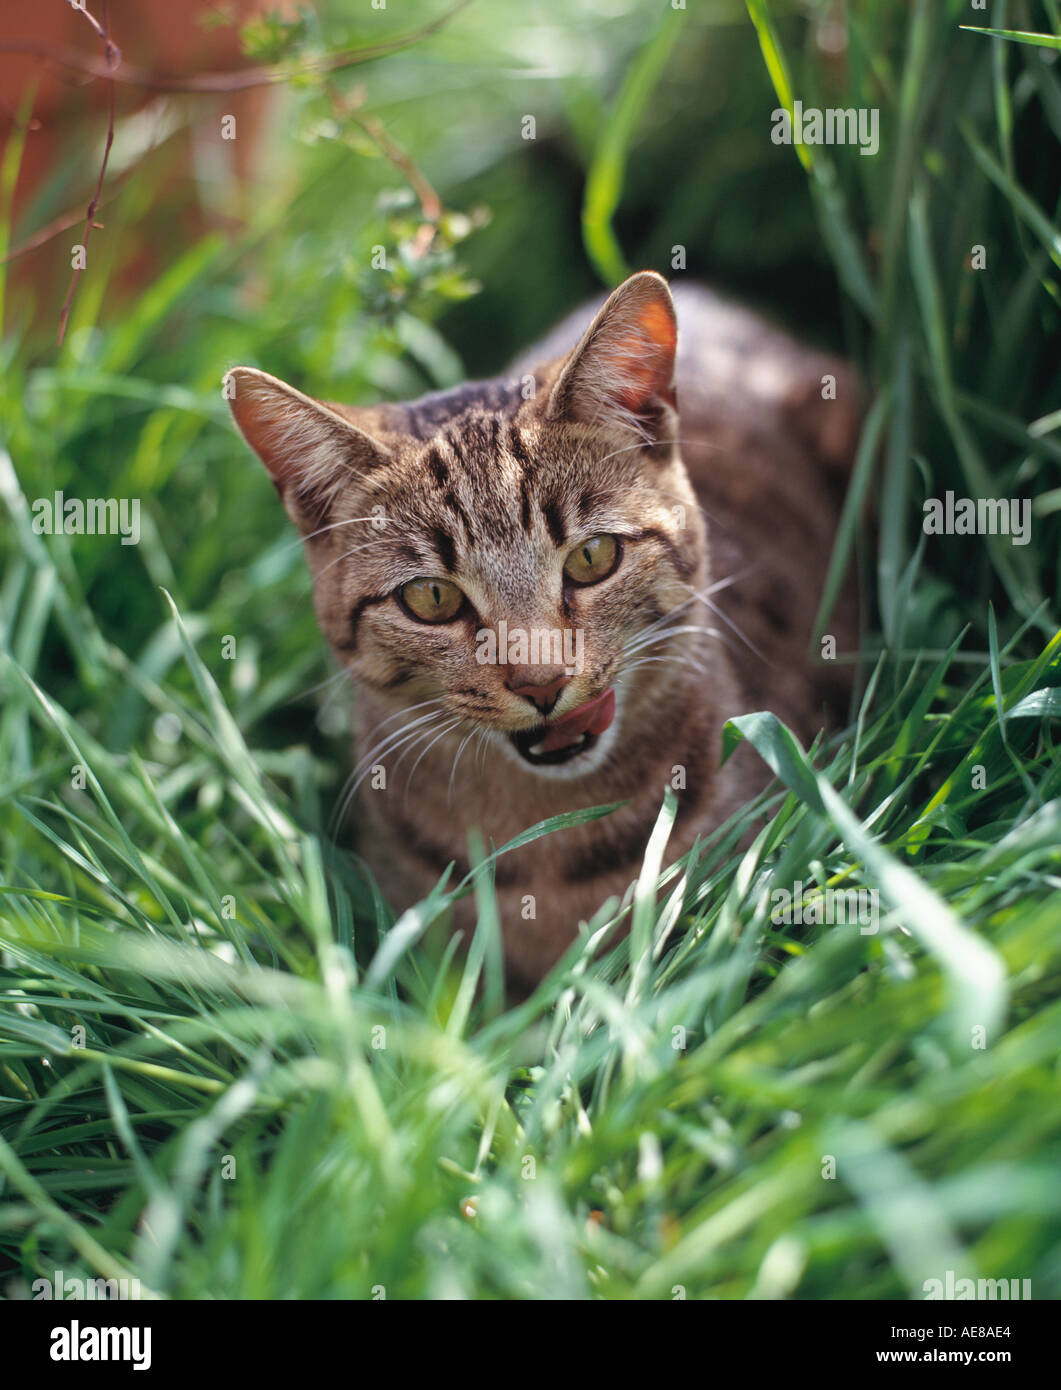 tabby cat in green grass - Stock Image